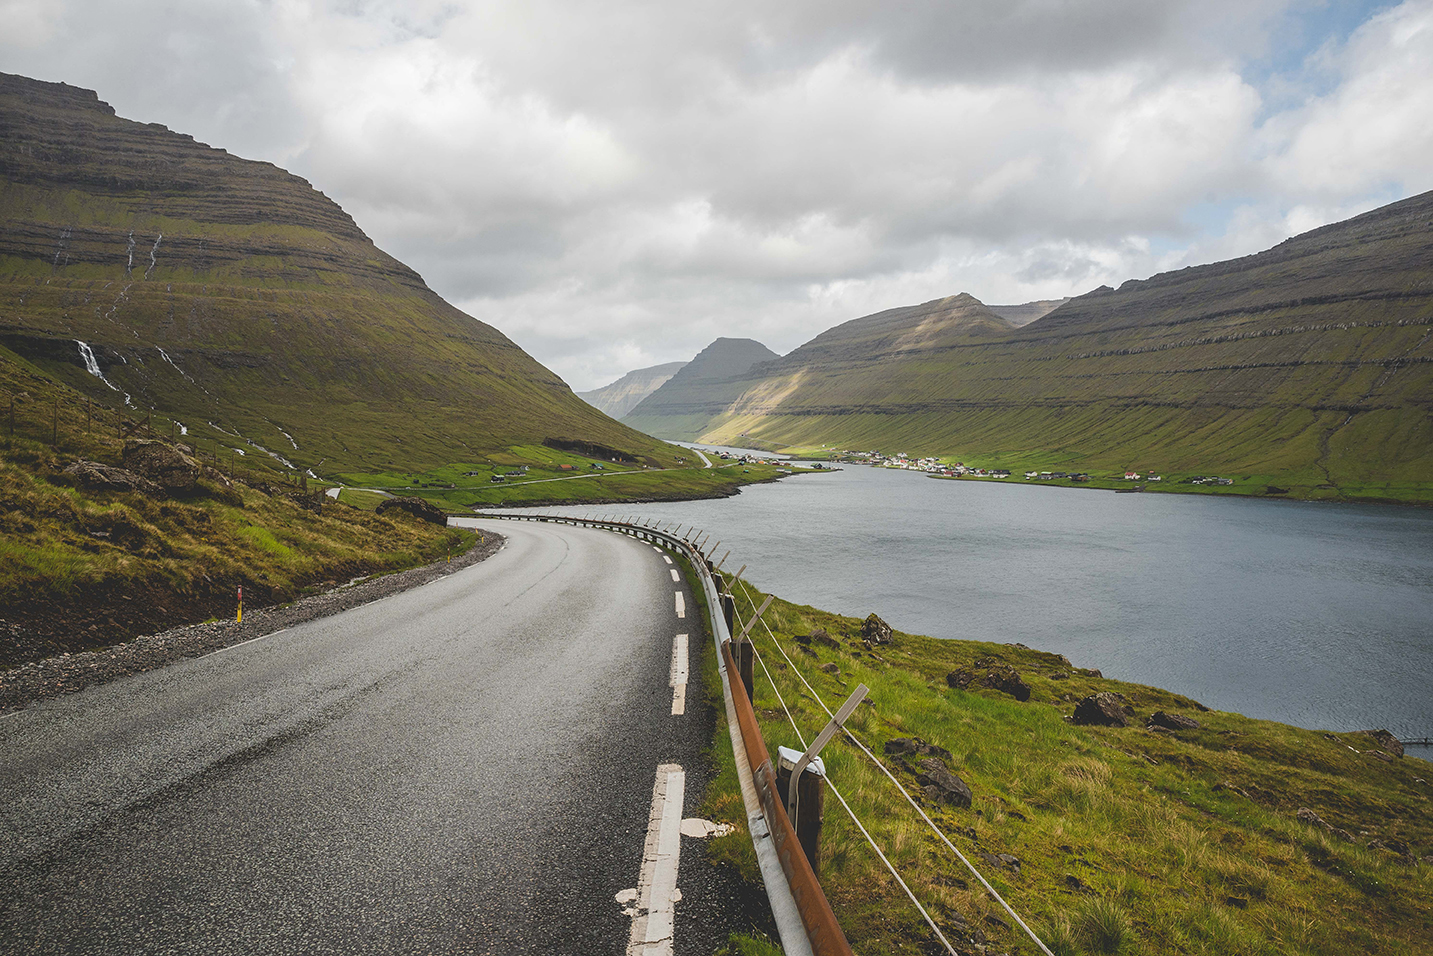 FaroeIslands_Day2_23-6-17_TAL-82.jpg